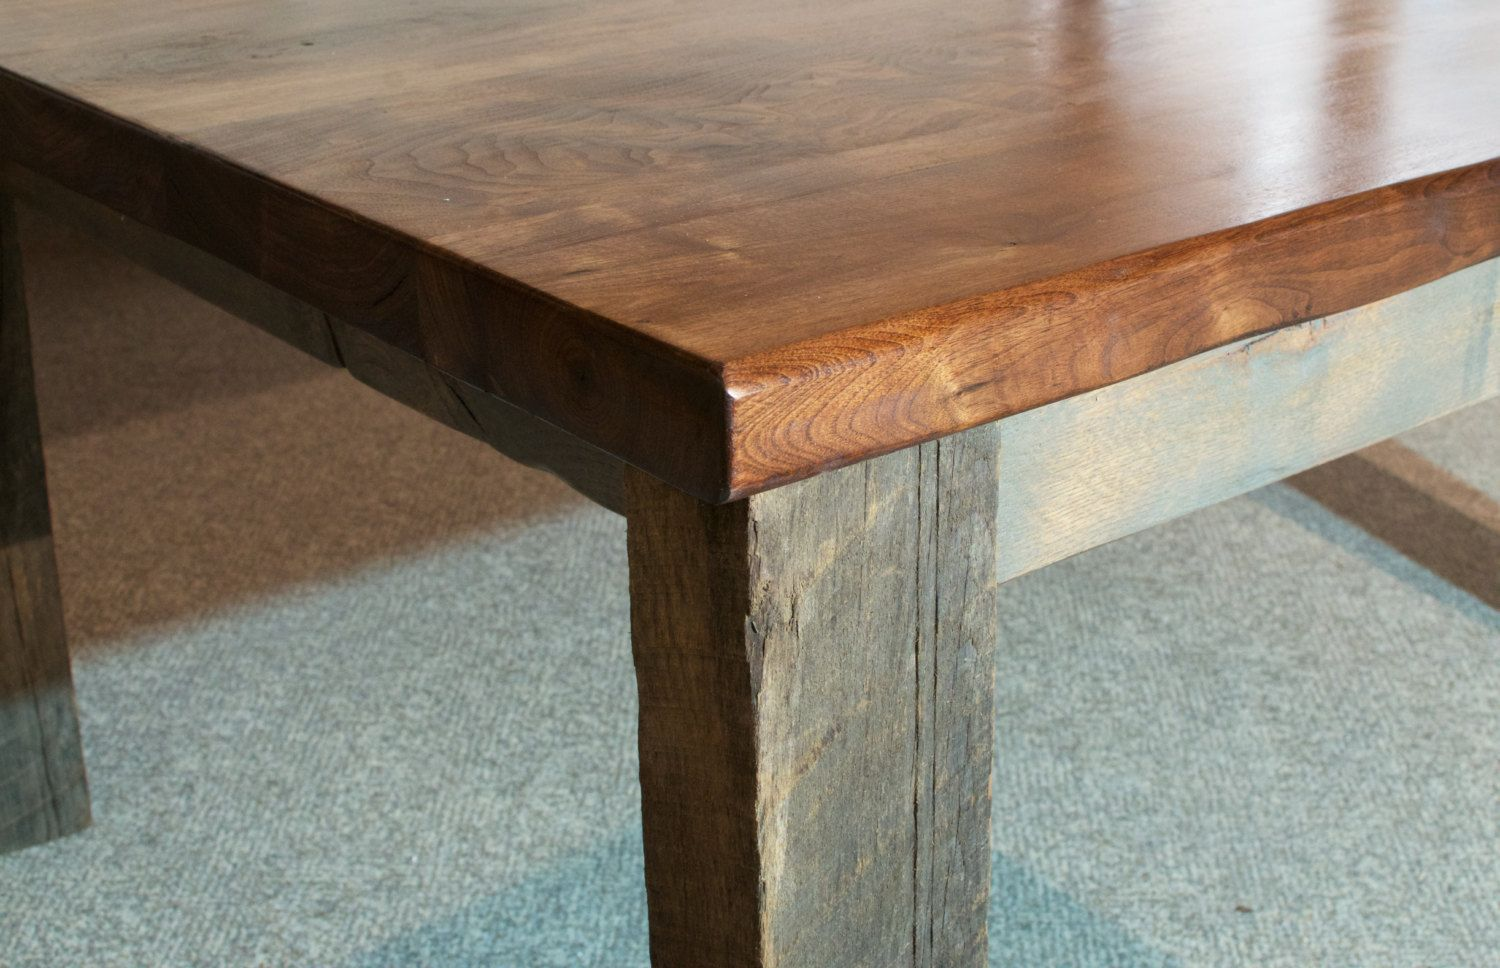 Buy a hand crafted walnut dining table live edge with for Buy reclaimed wood online